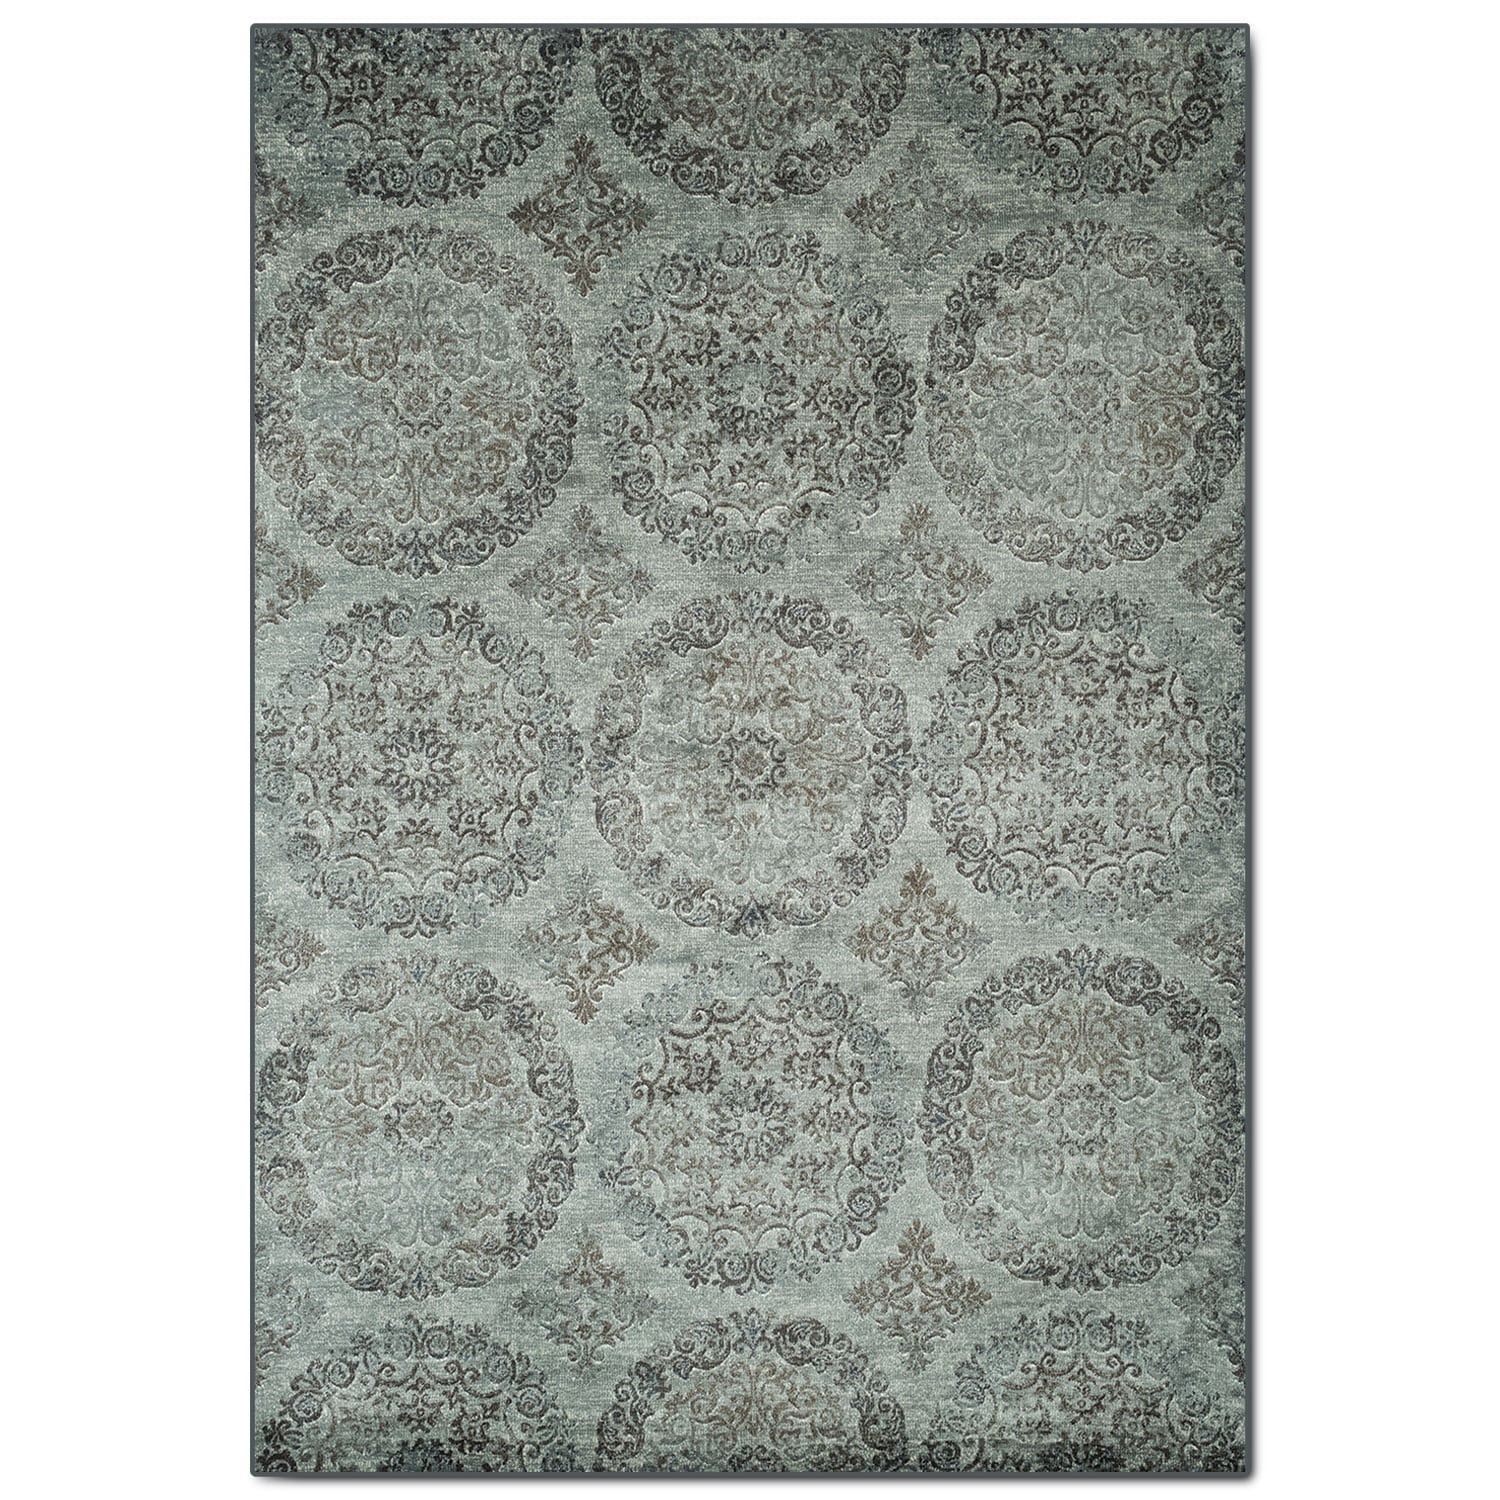 Sonoma 5' x 8' Area Rug - Beige and Light Blue